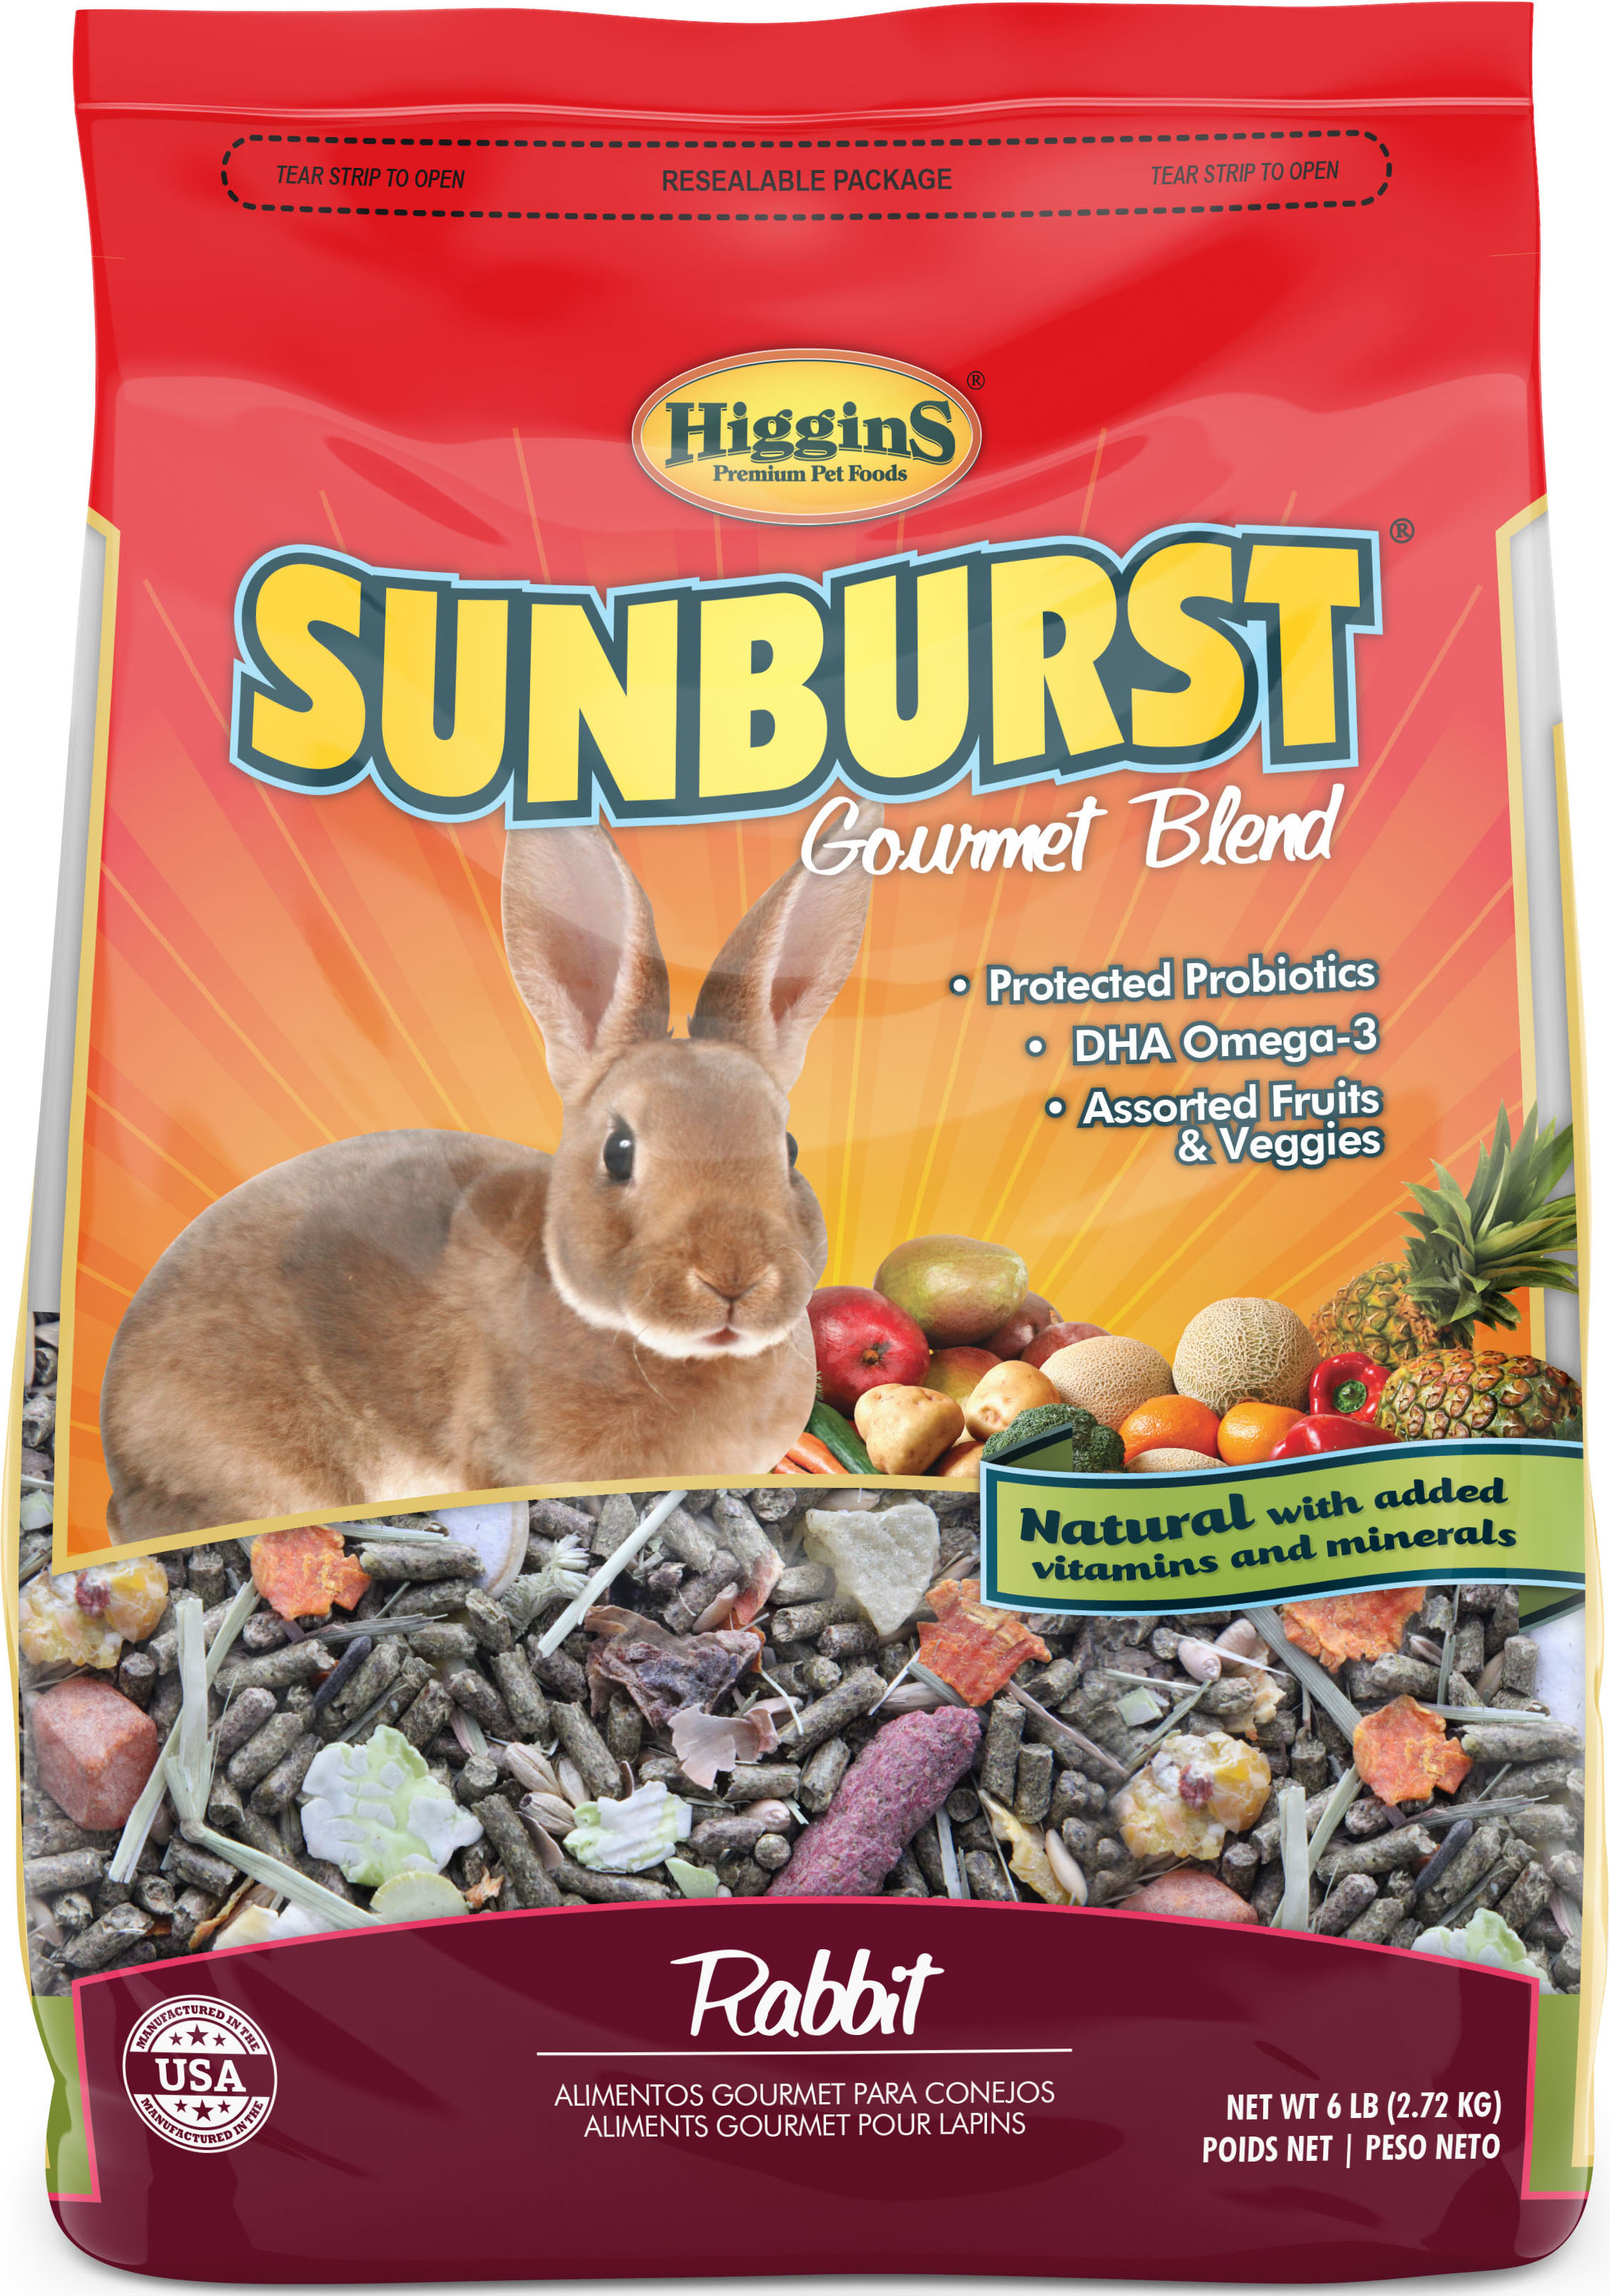 Higgins Sunburst Gourmet Blend Rabbit Food, 6-lb